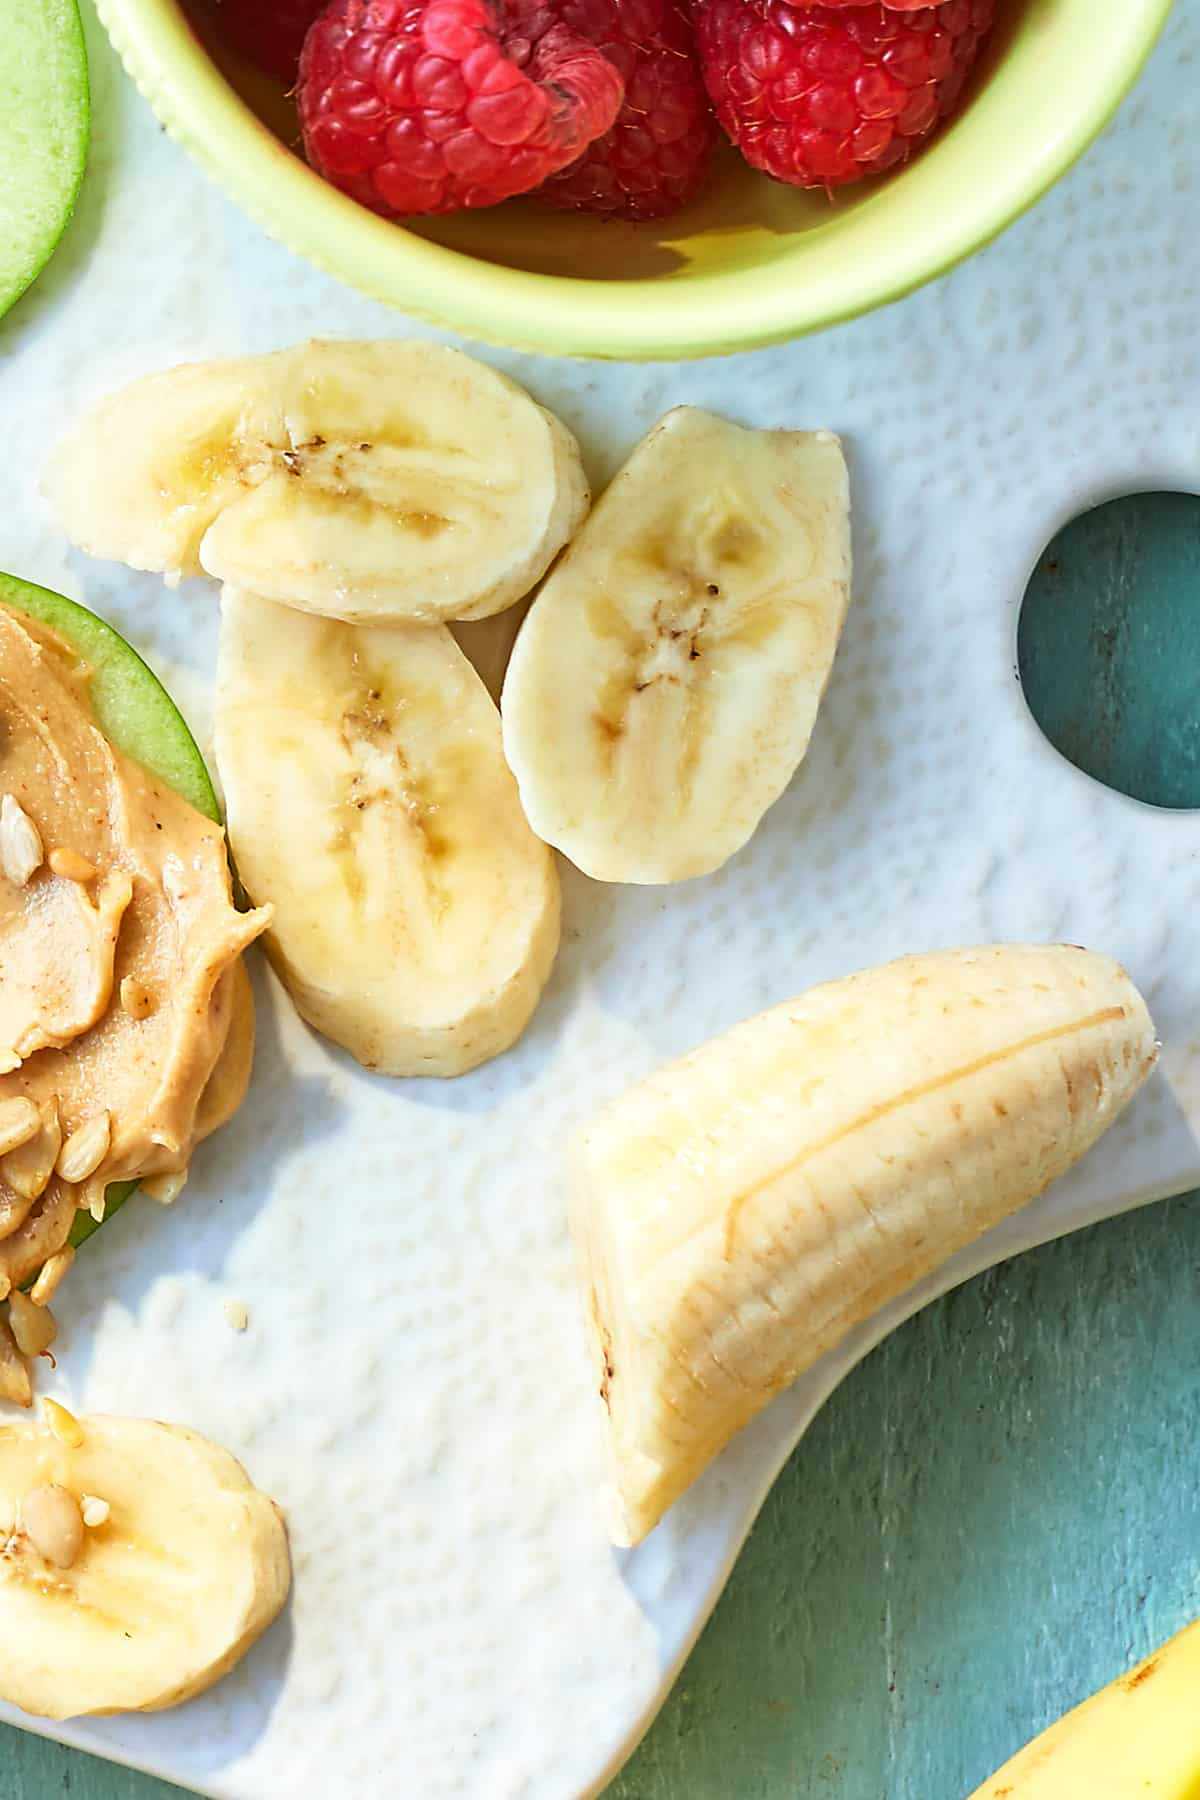 Sliced banana on a white board, surrounded by ingredients for apple slices with peanut butter.